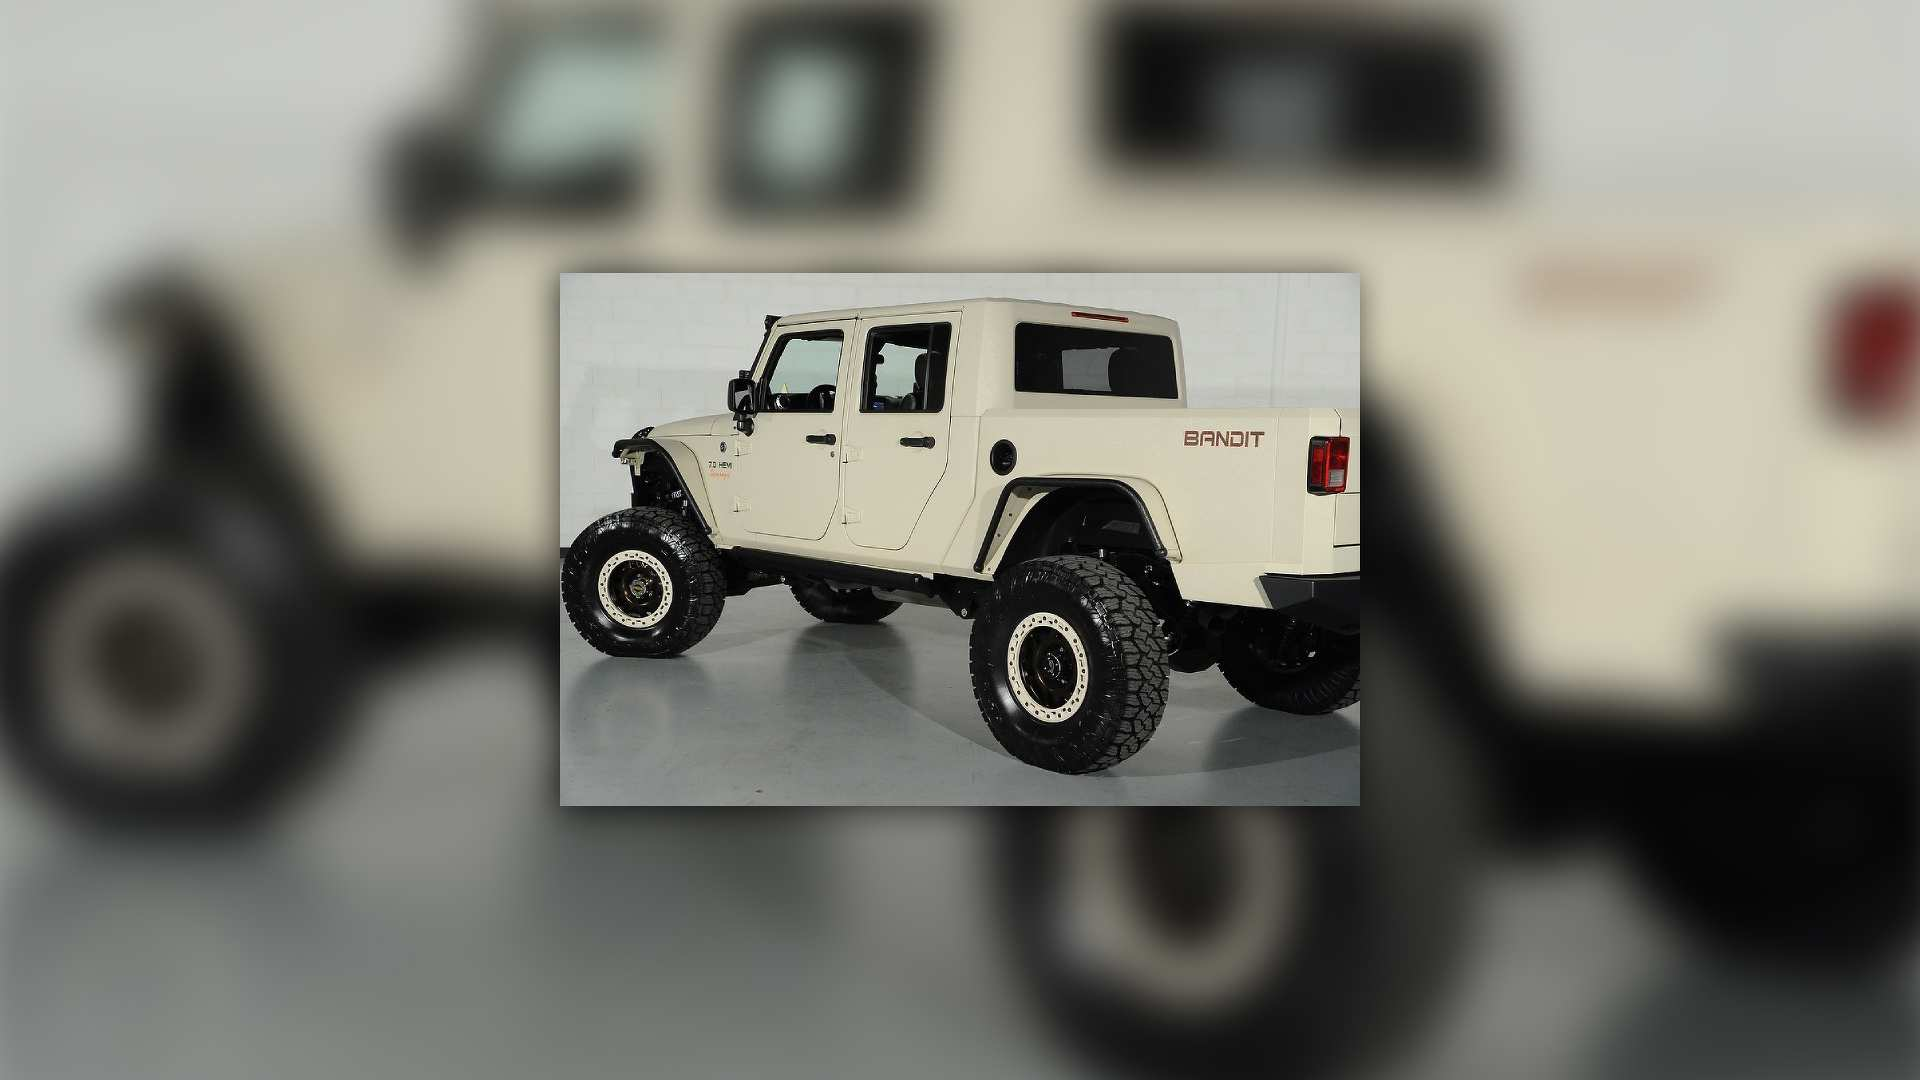 65 All New 2019 Jeep Bandit Price New Review for 2019 Jeep Bandit Price